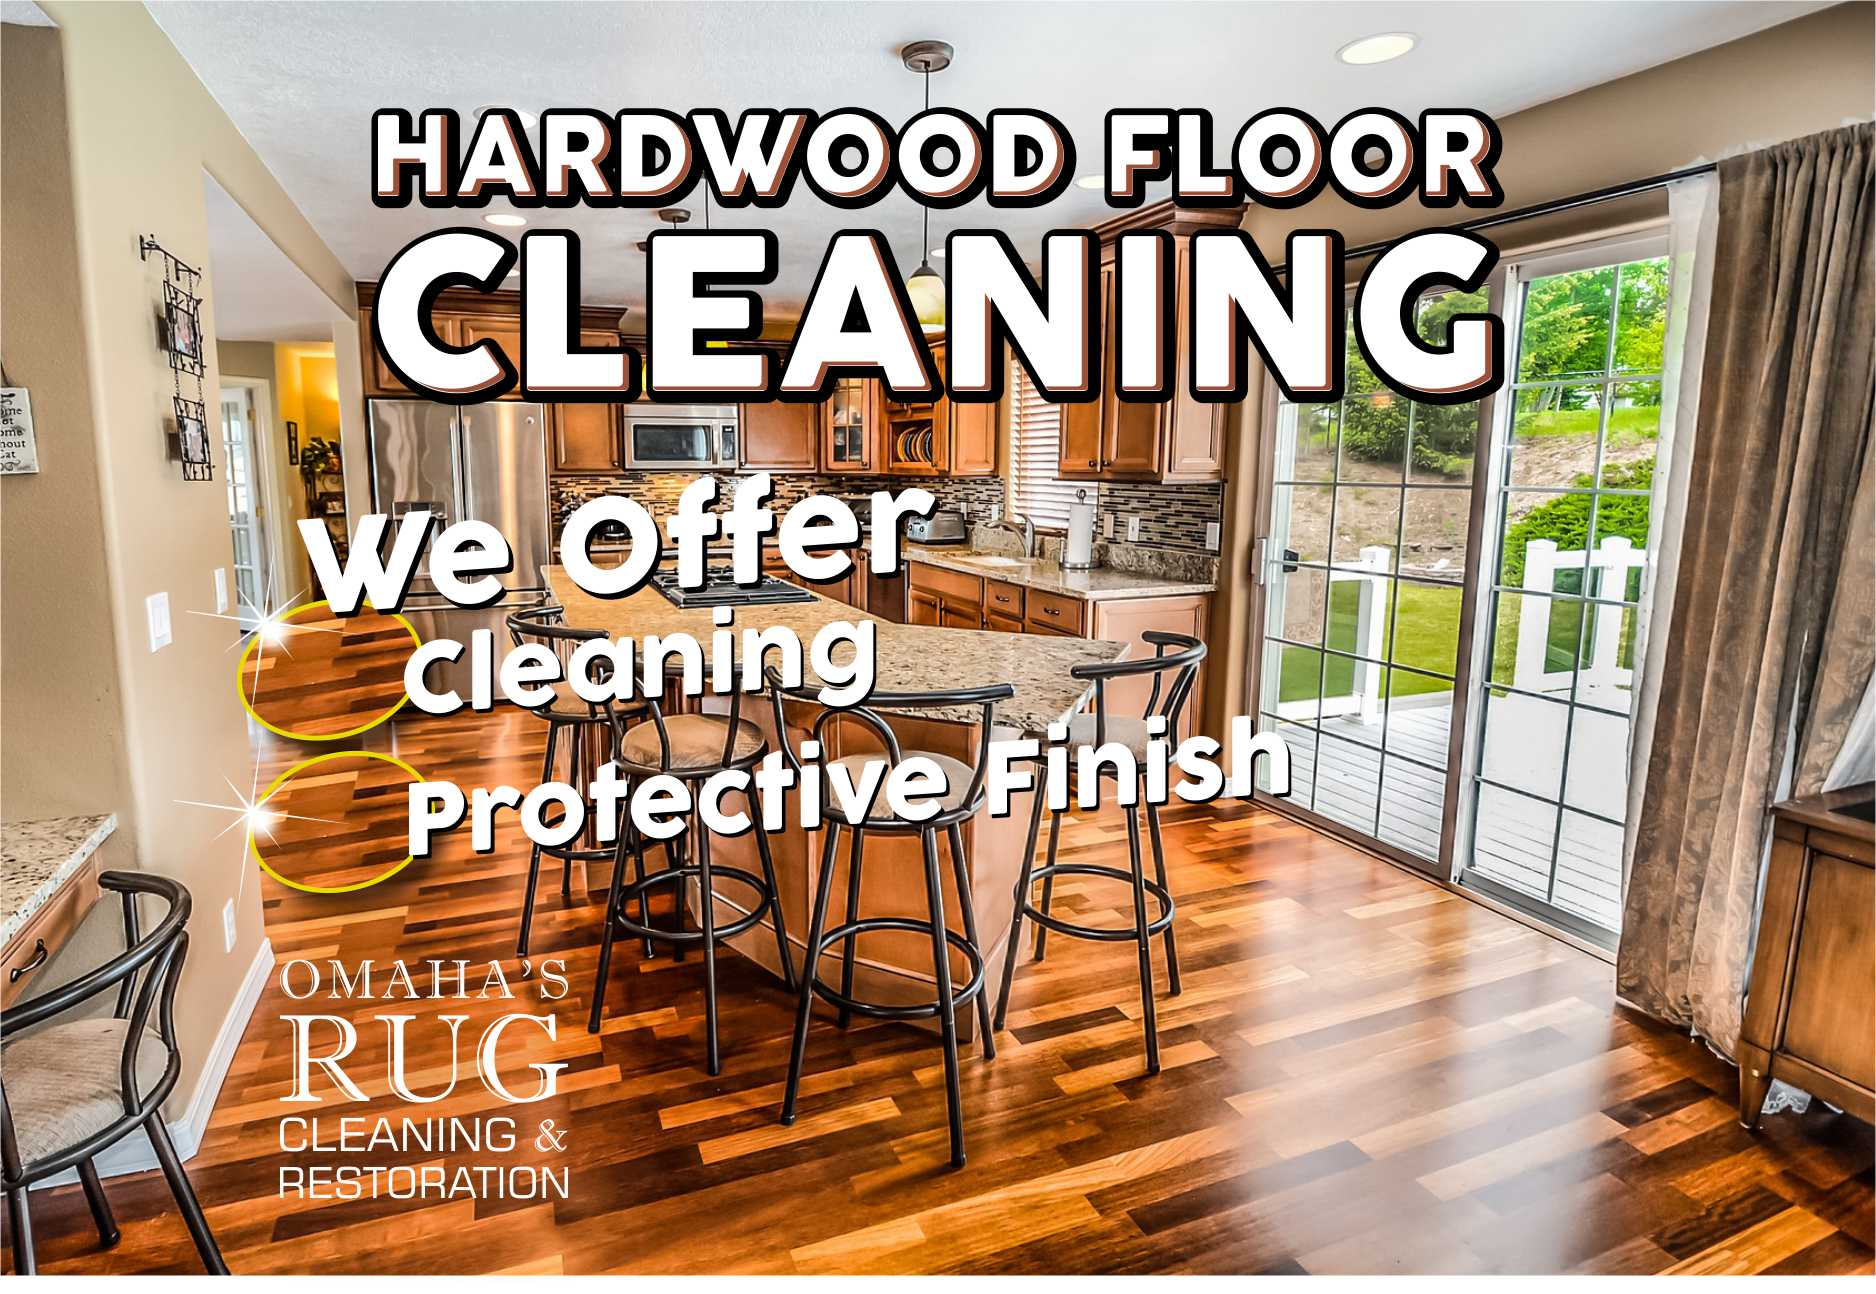 Hardwood Floor Cleaning Near Me in Omaha, Nebraska